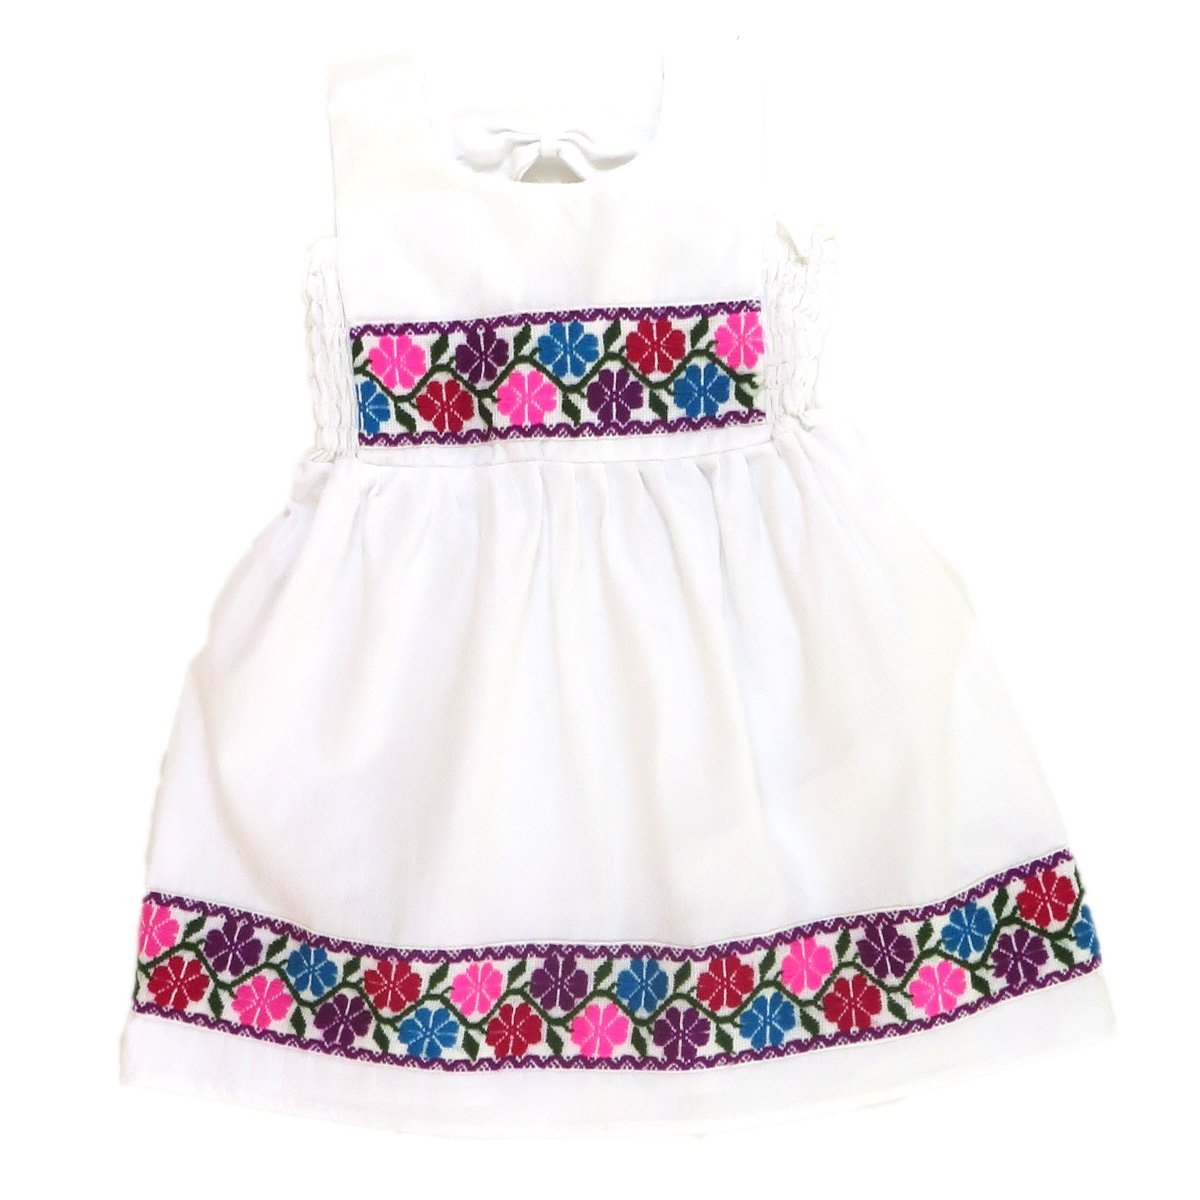 0495e1c05279 Amazon.com: Mexican Clothing Co Little Girls Mexican Dress Nahua Veracruz Manta  CT 3T White 1952: Clothing